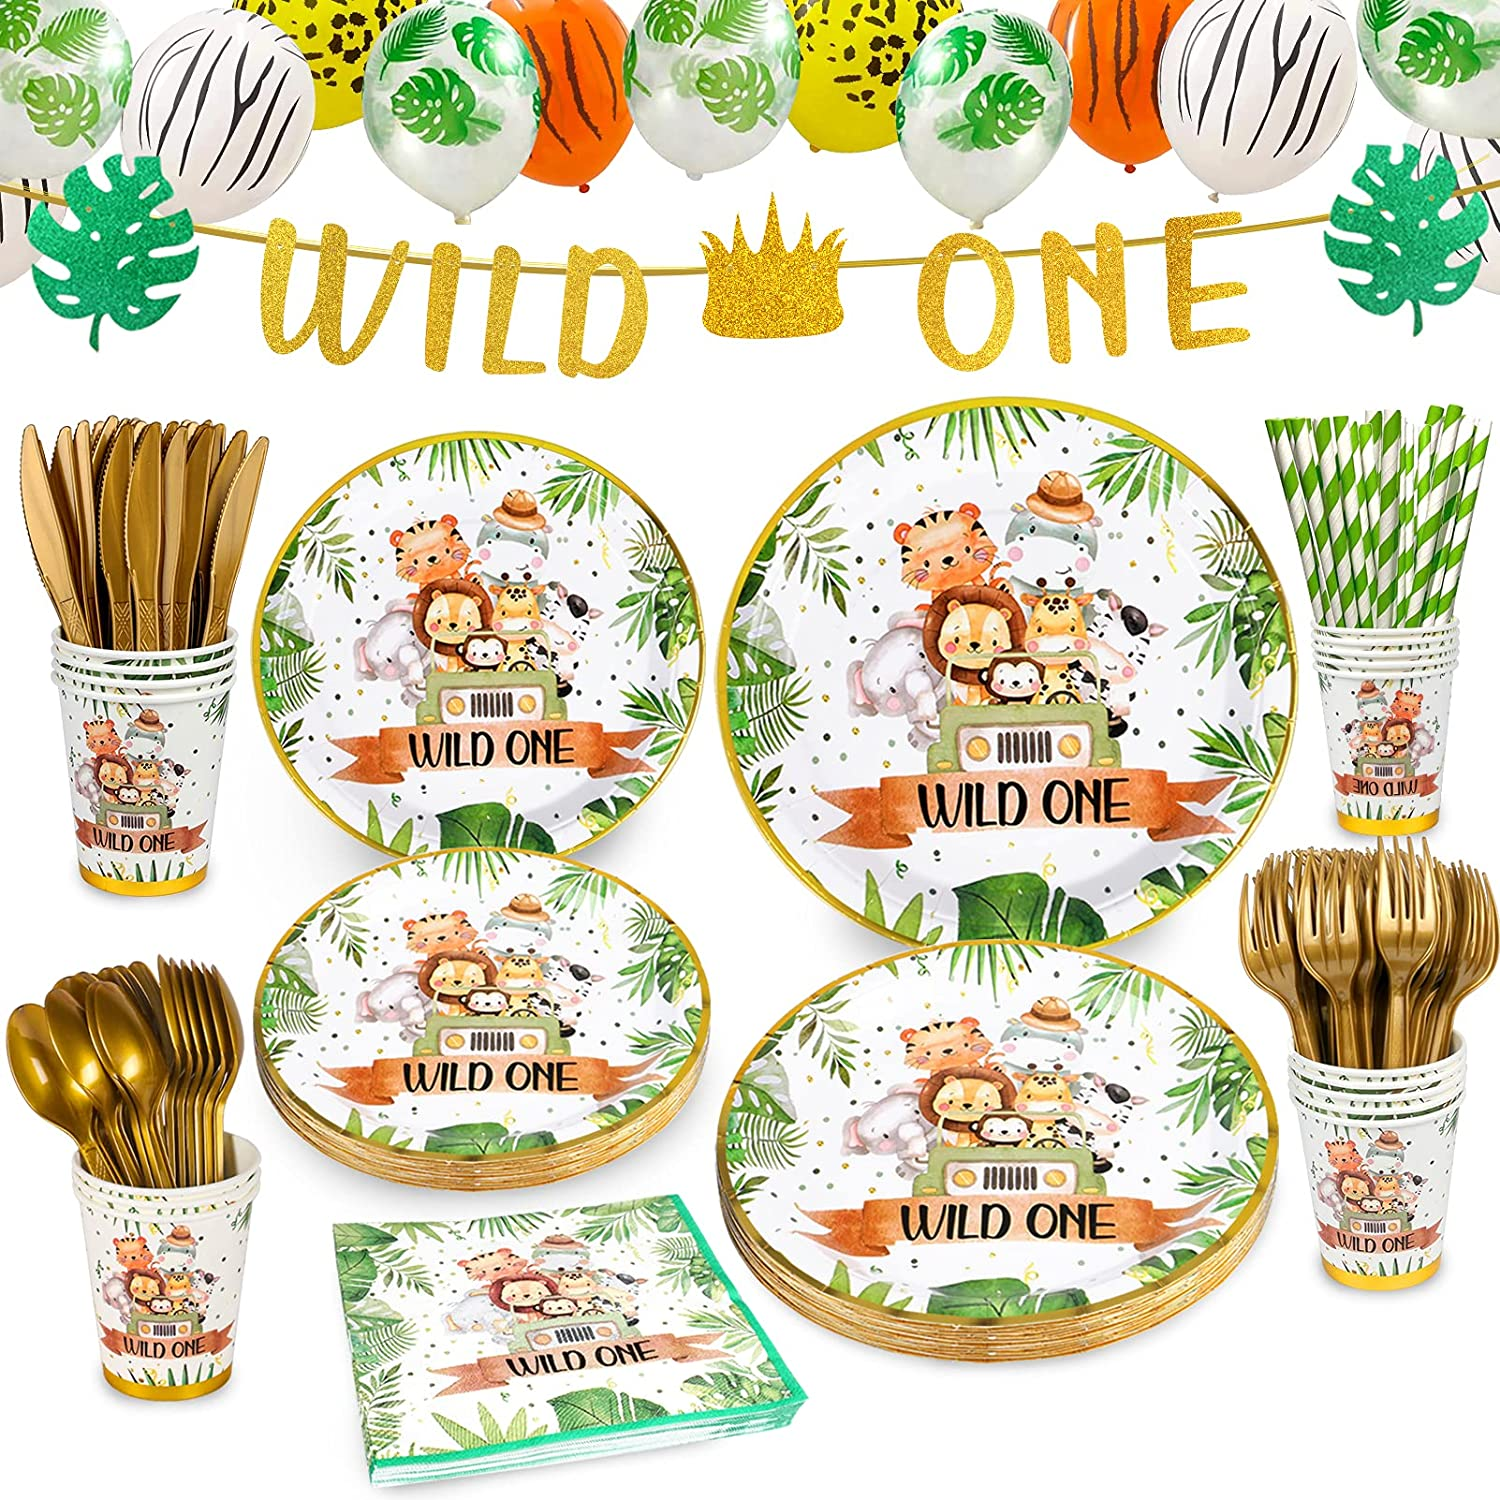 Wild One Brithday Decorations,Jungle Theme Party Supplies,Wild One Party Plates and Napkins Including Plates,Napkins,Cutlery,Cups, Banner,Jungle Balloons for Baby Shower Birthday Party Decorations